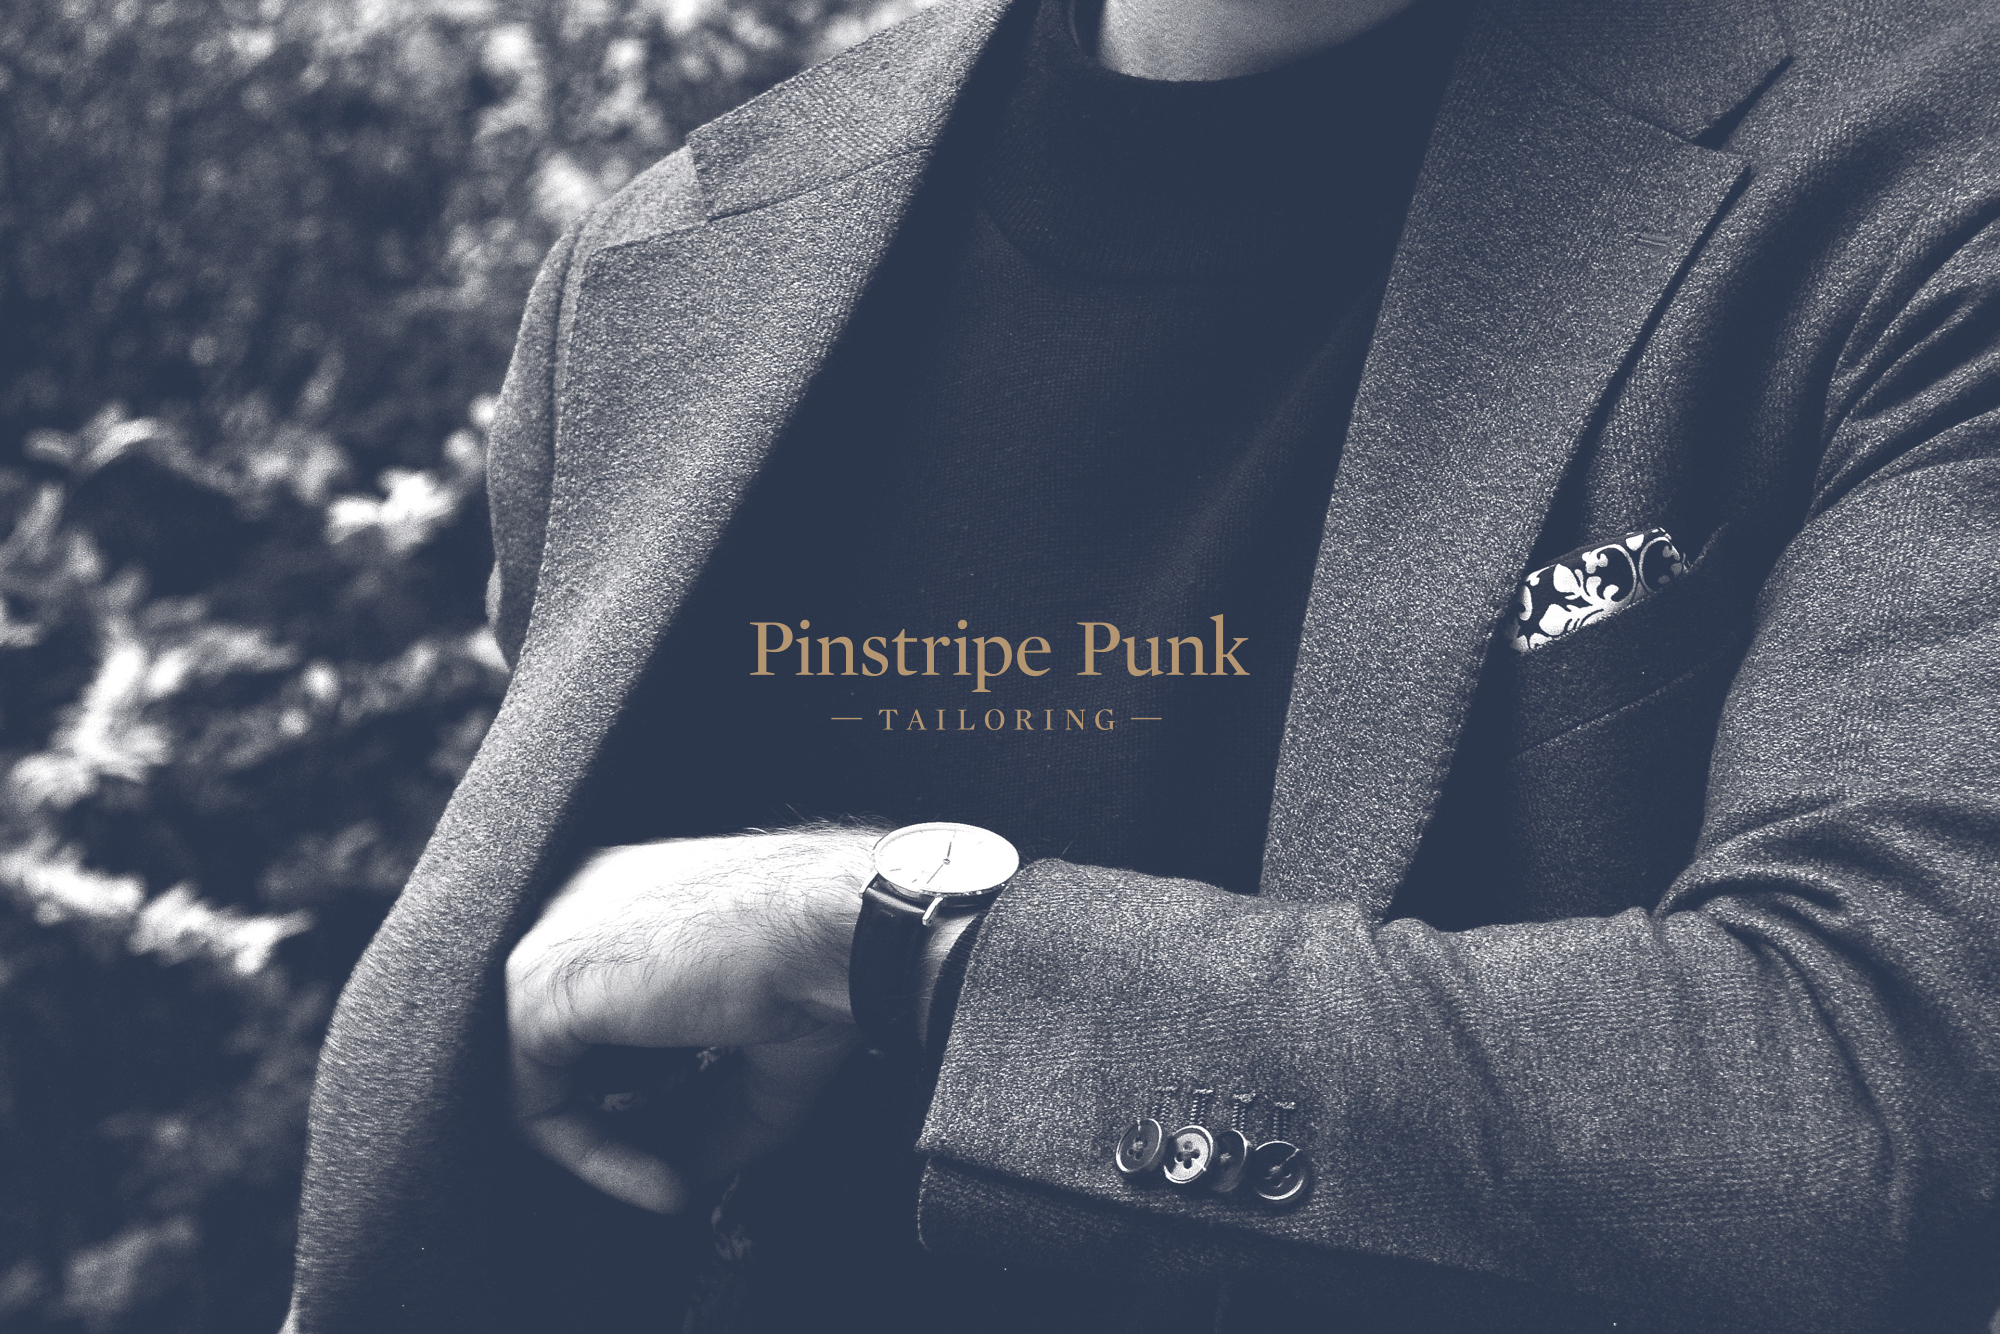 Cover image: Pinstripe Punk Tailoring